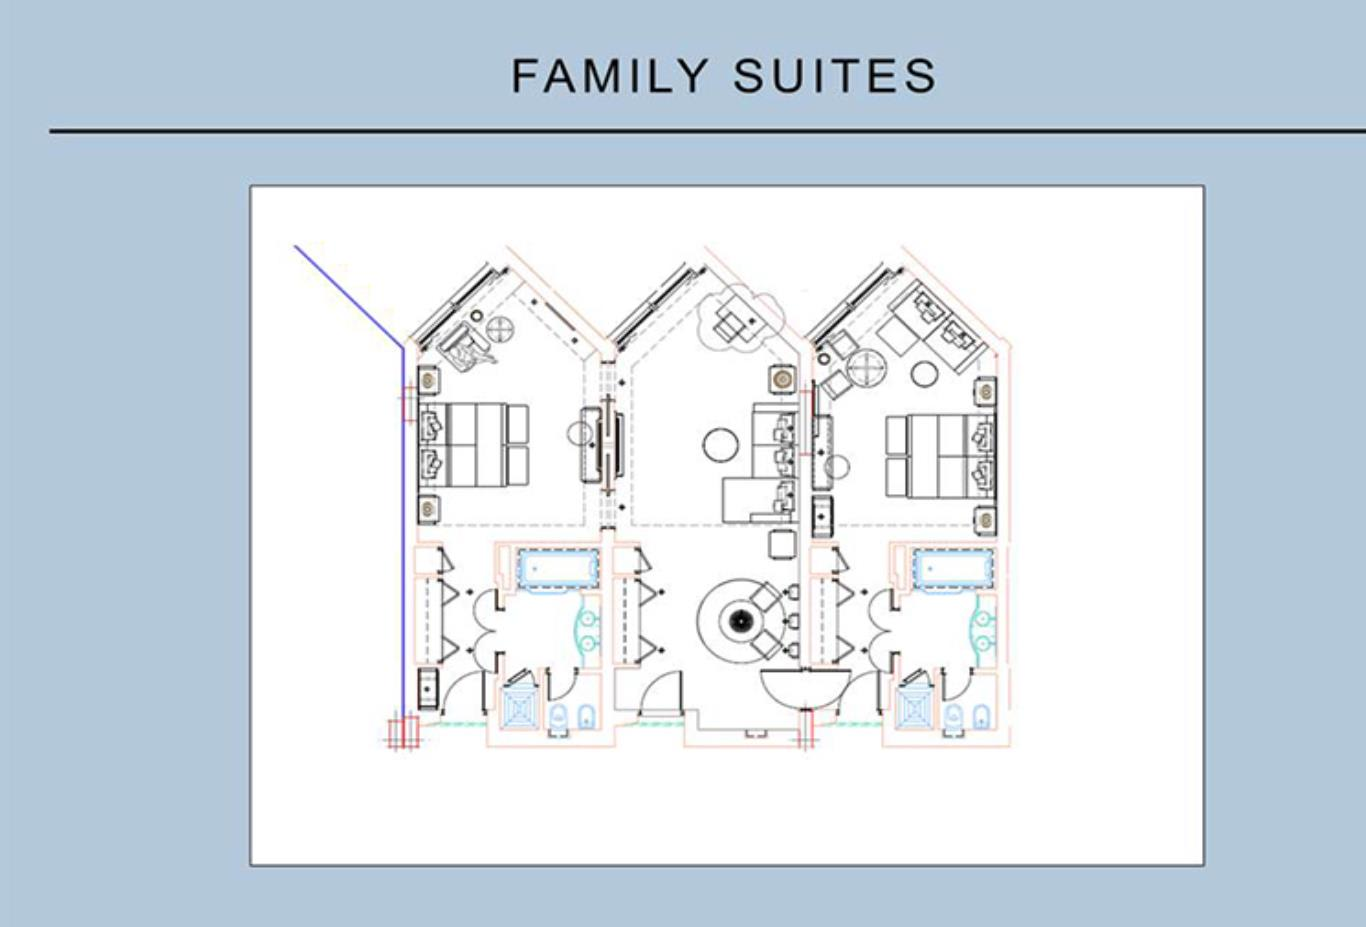 Family Suite Two Bedroom floorplan